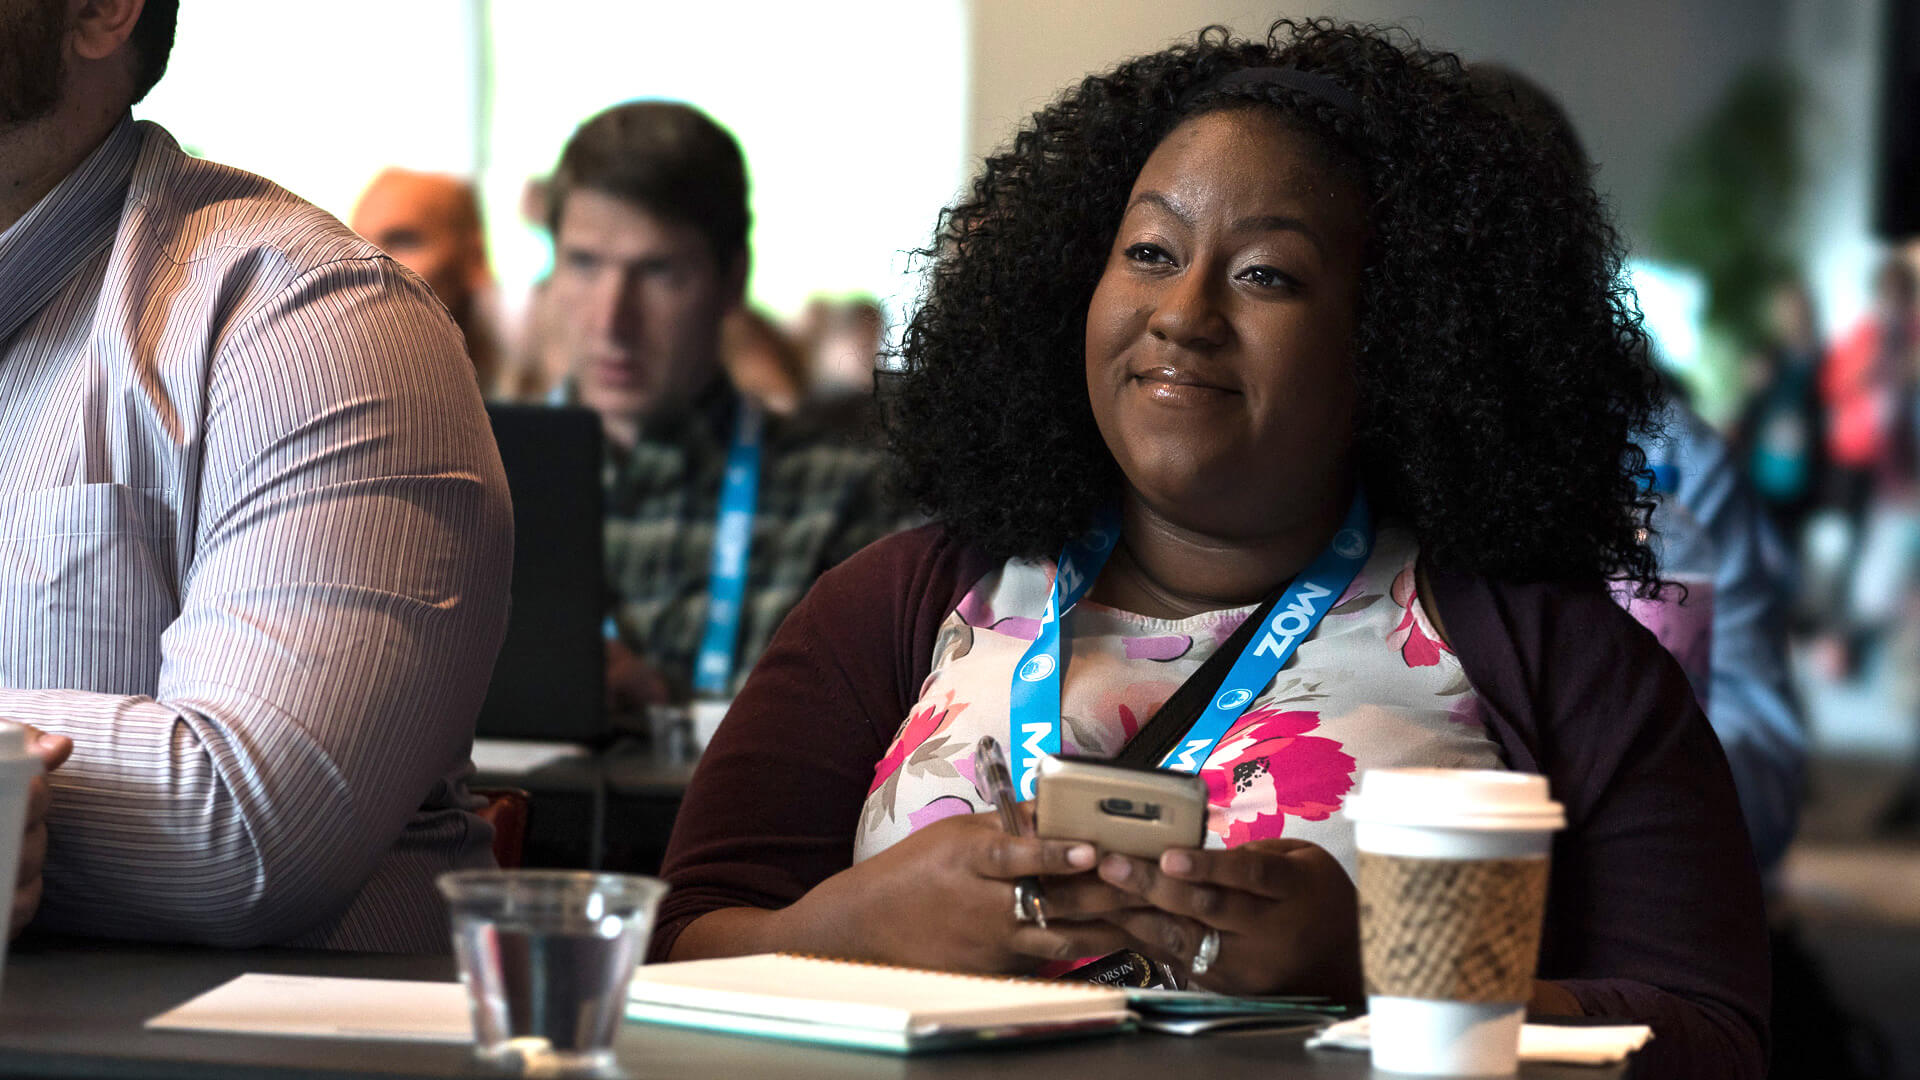 Sharpen your digital marketing skills with an SMX Advanced workshop